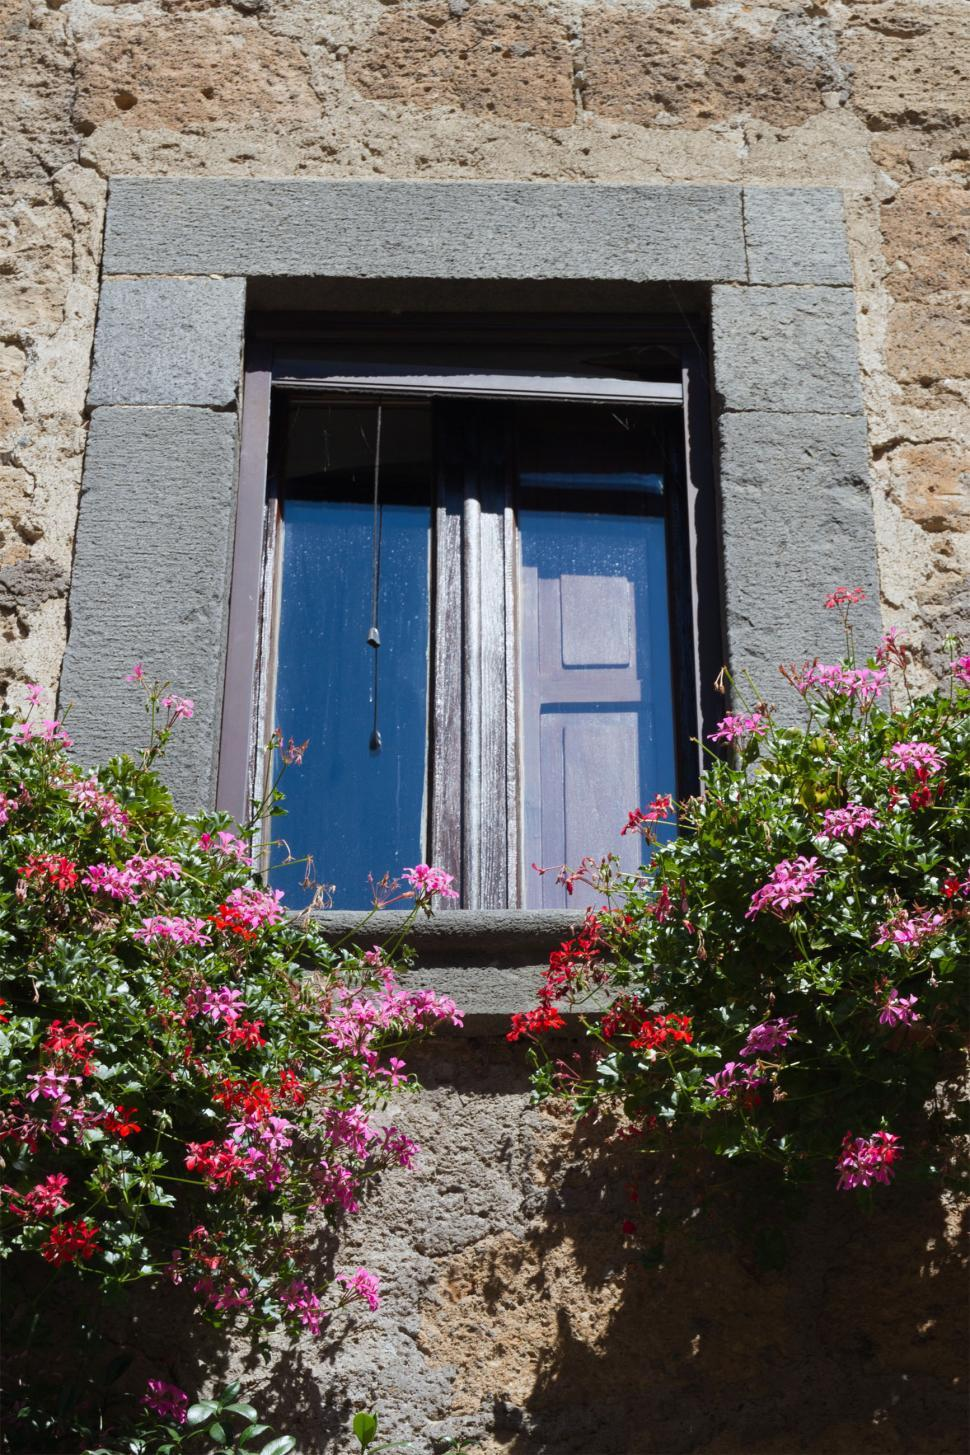 Download Free Stock HD Photo of Flowers and Window Online